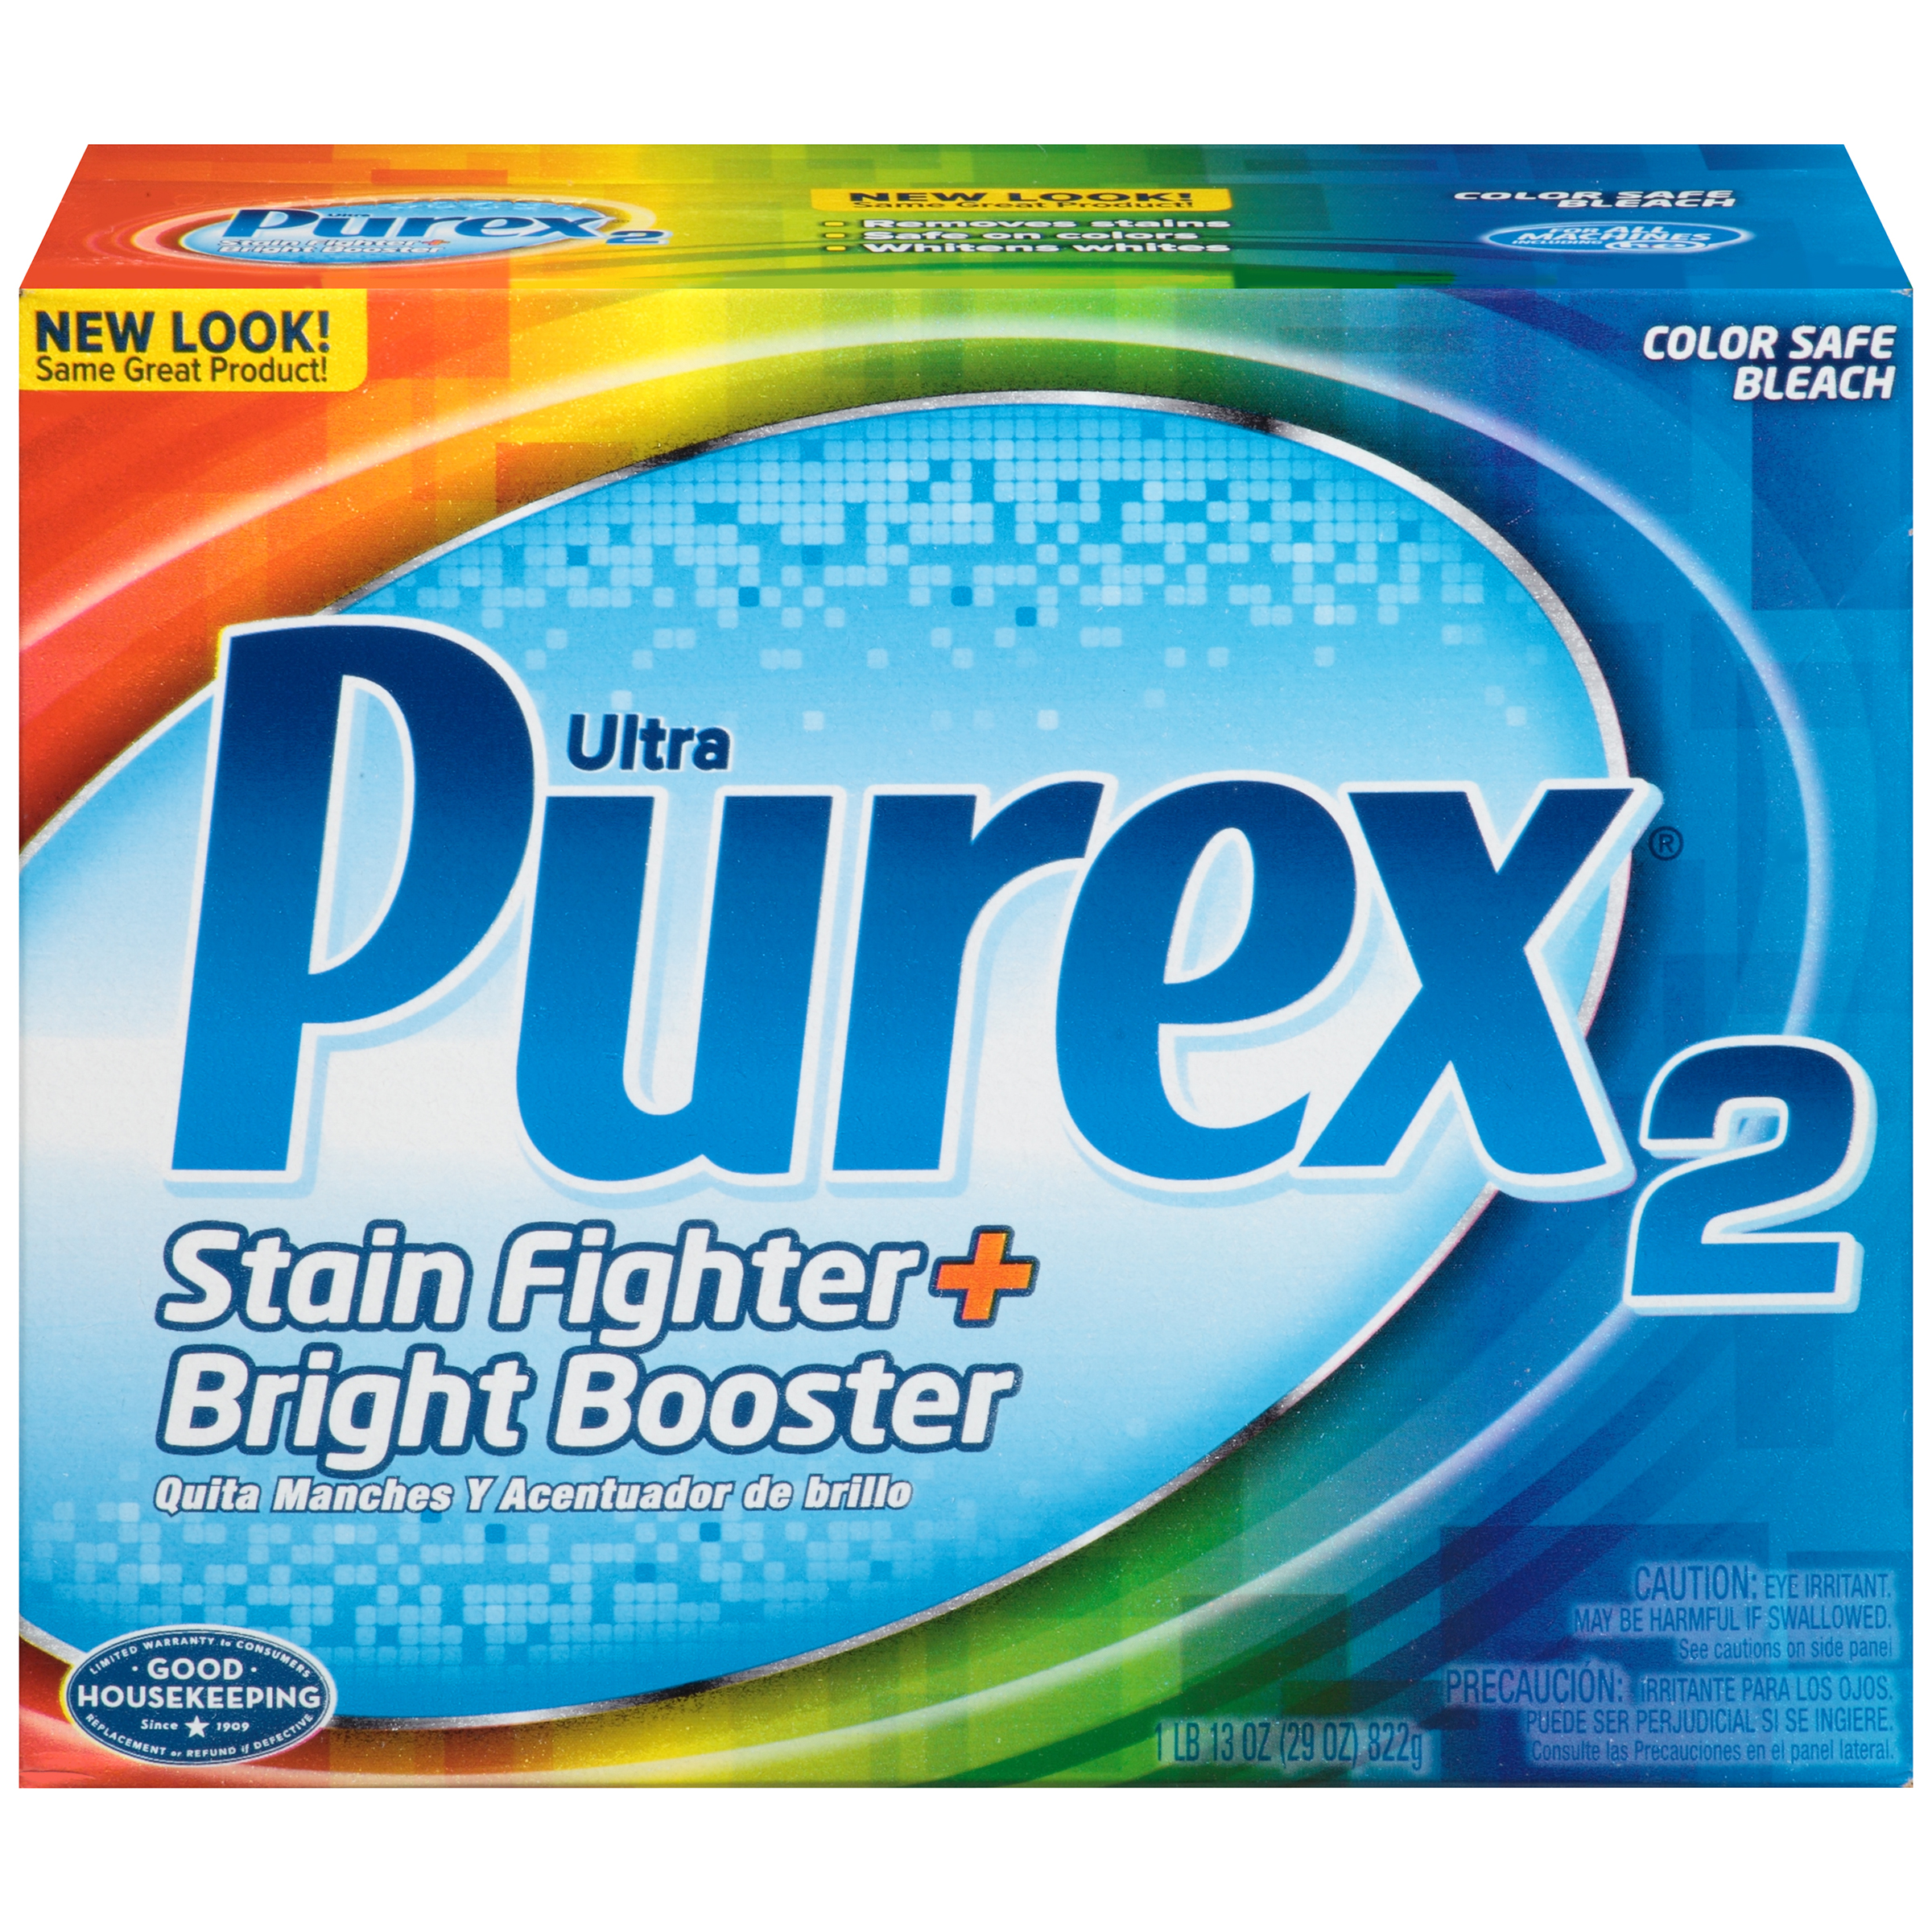 Purex2 Powder Color Safe Bleach, Stain Fighter and Bright Booster, 29 Ounce